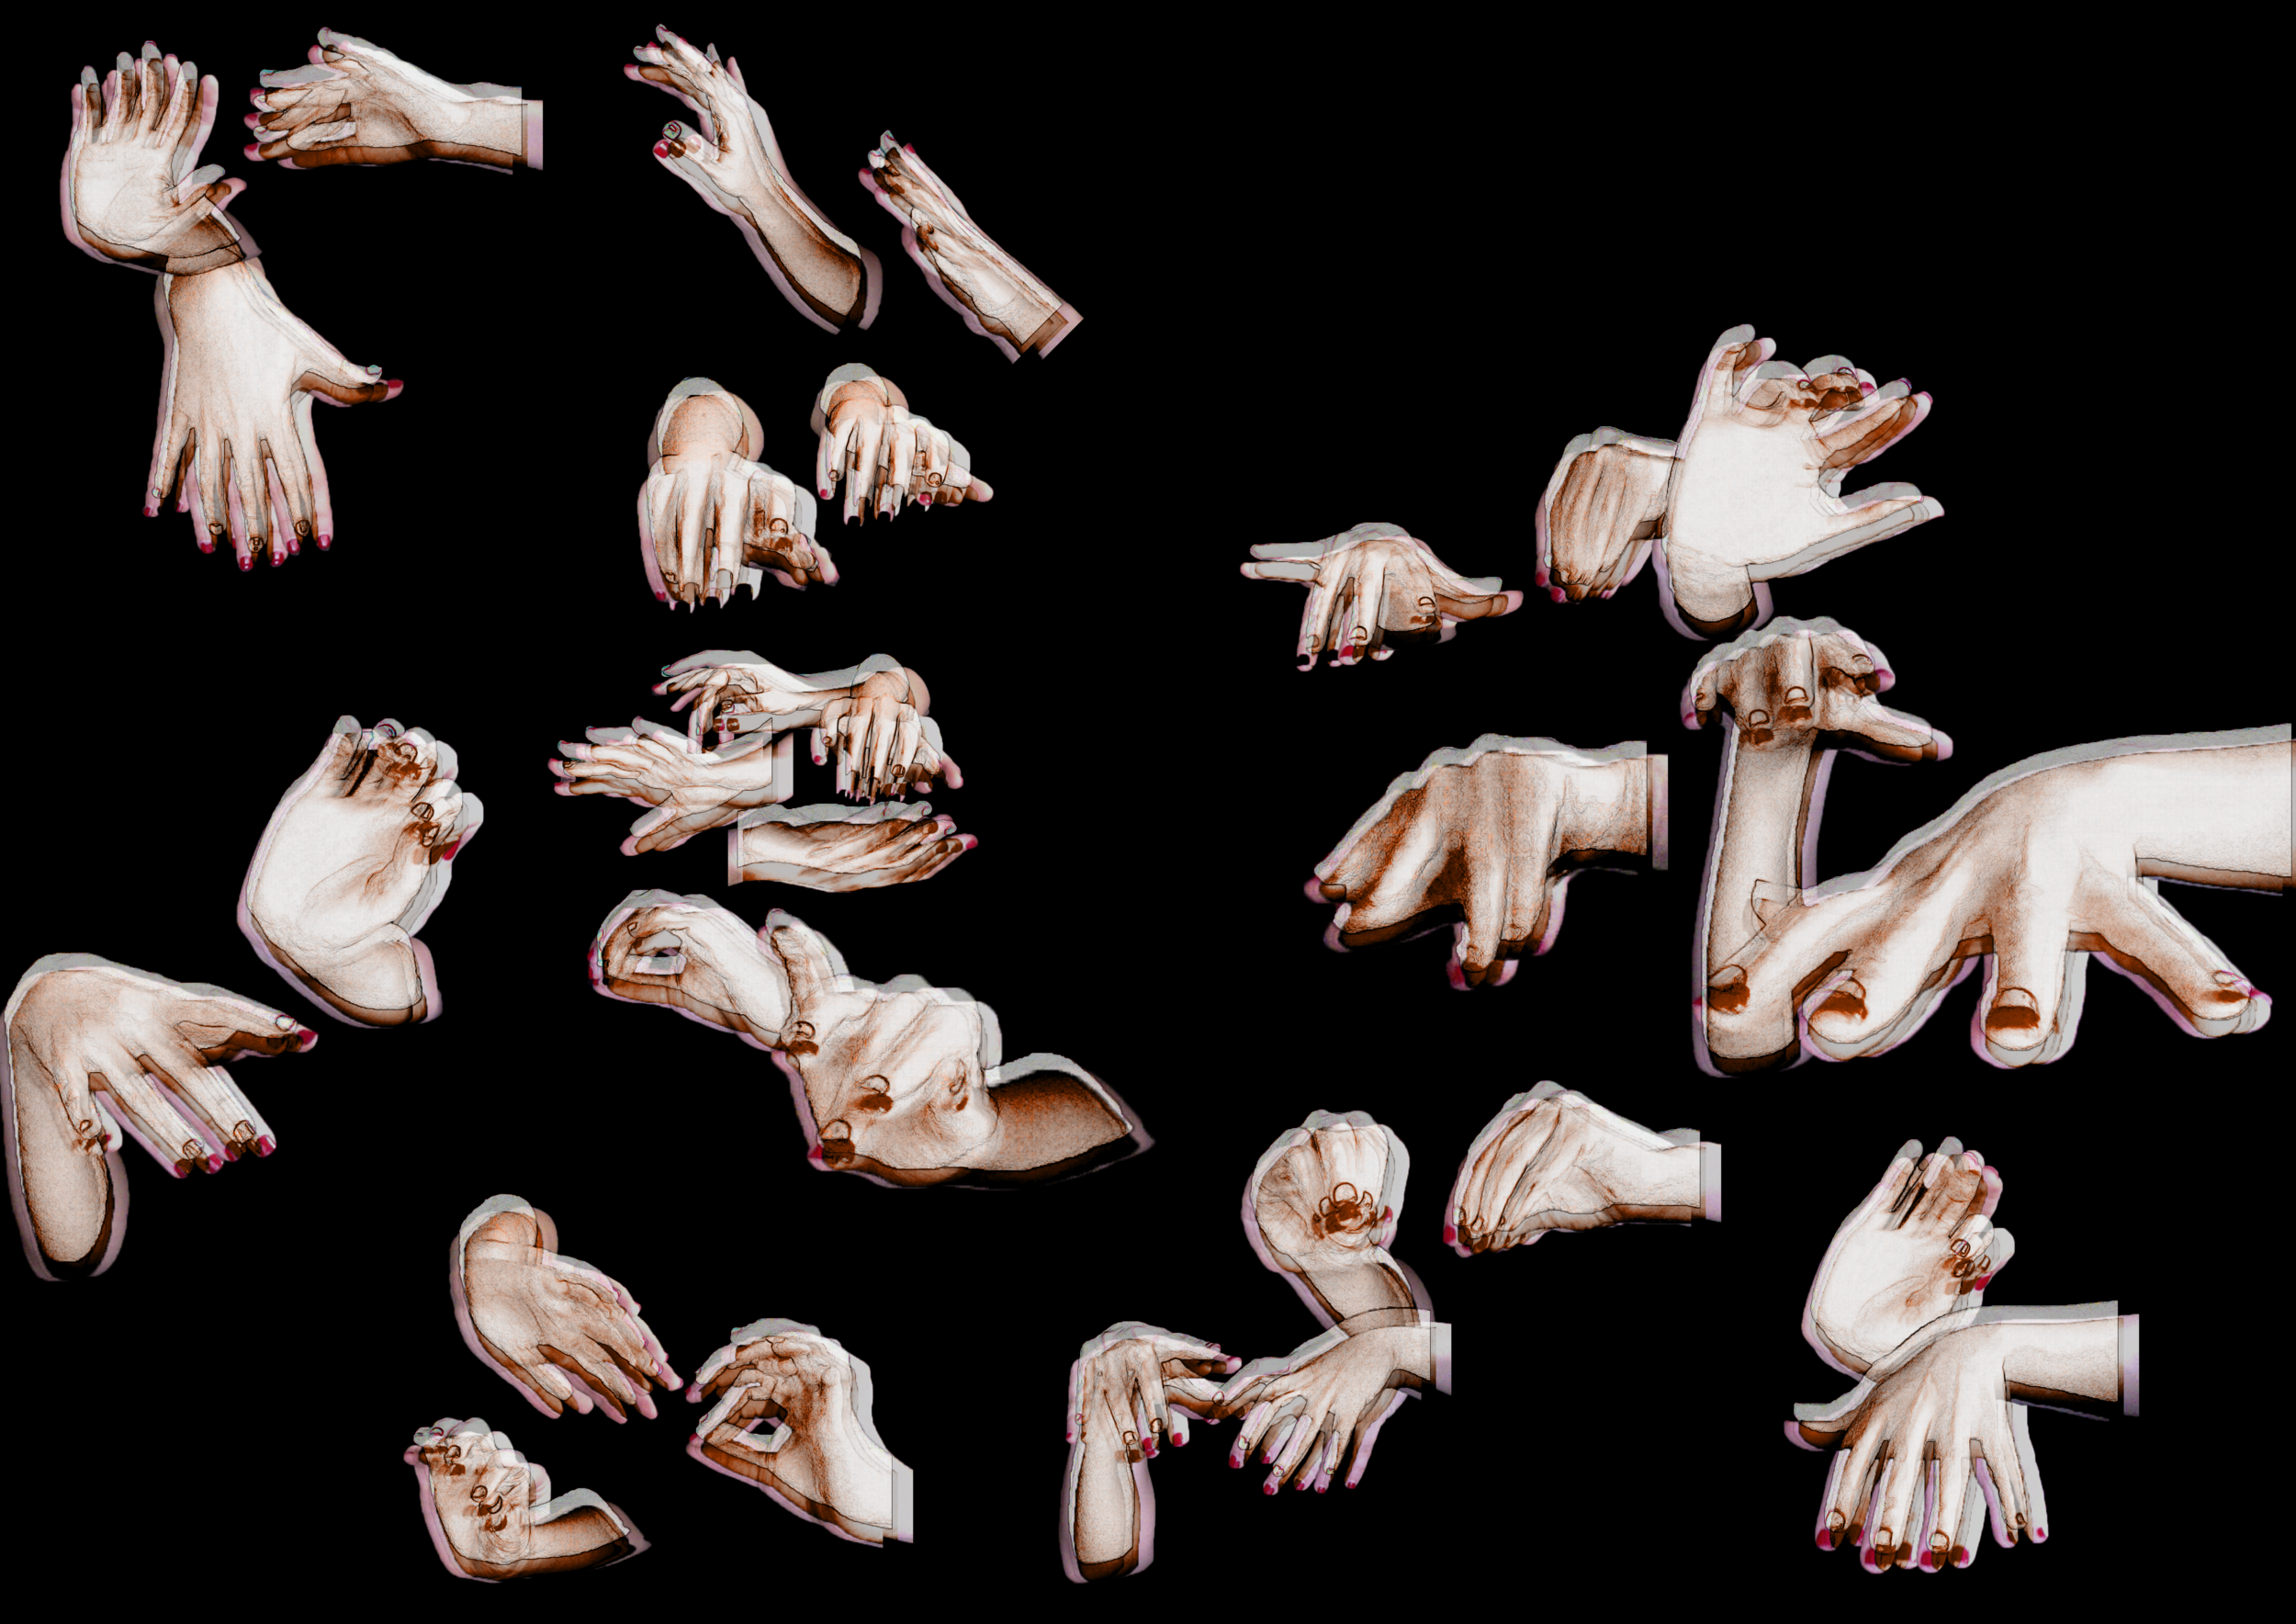 Hands Collage - Sign Language Experiment